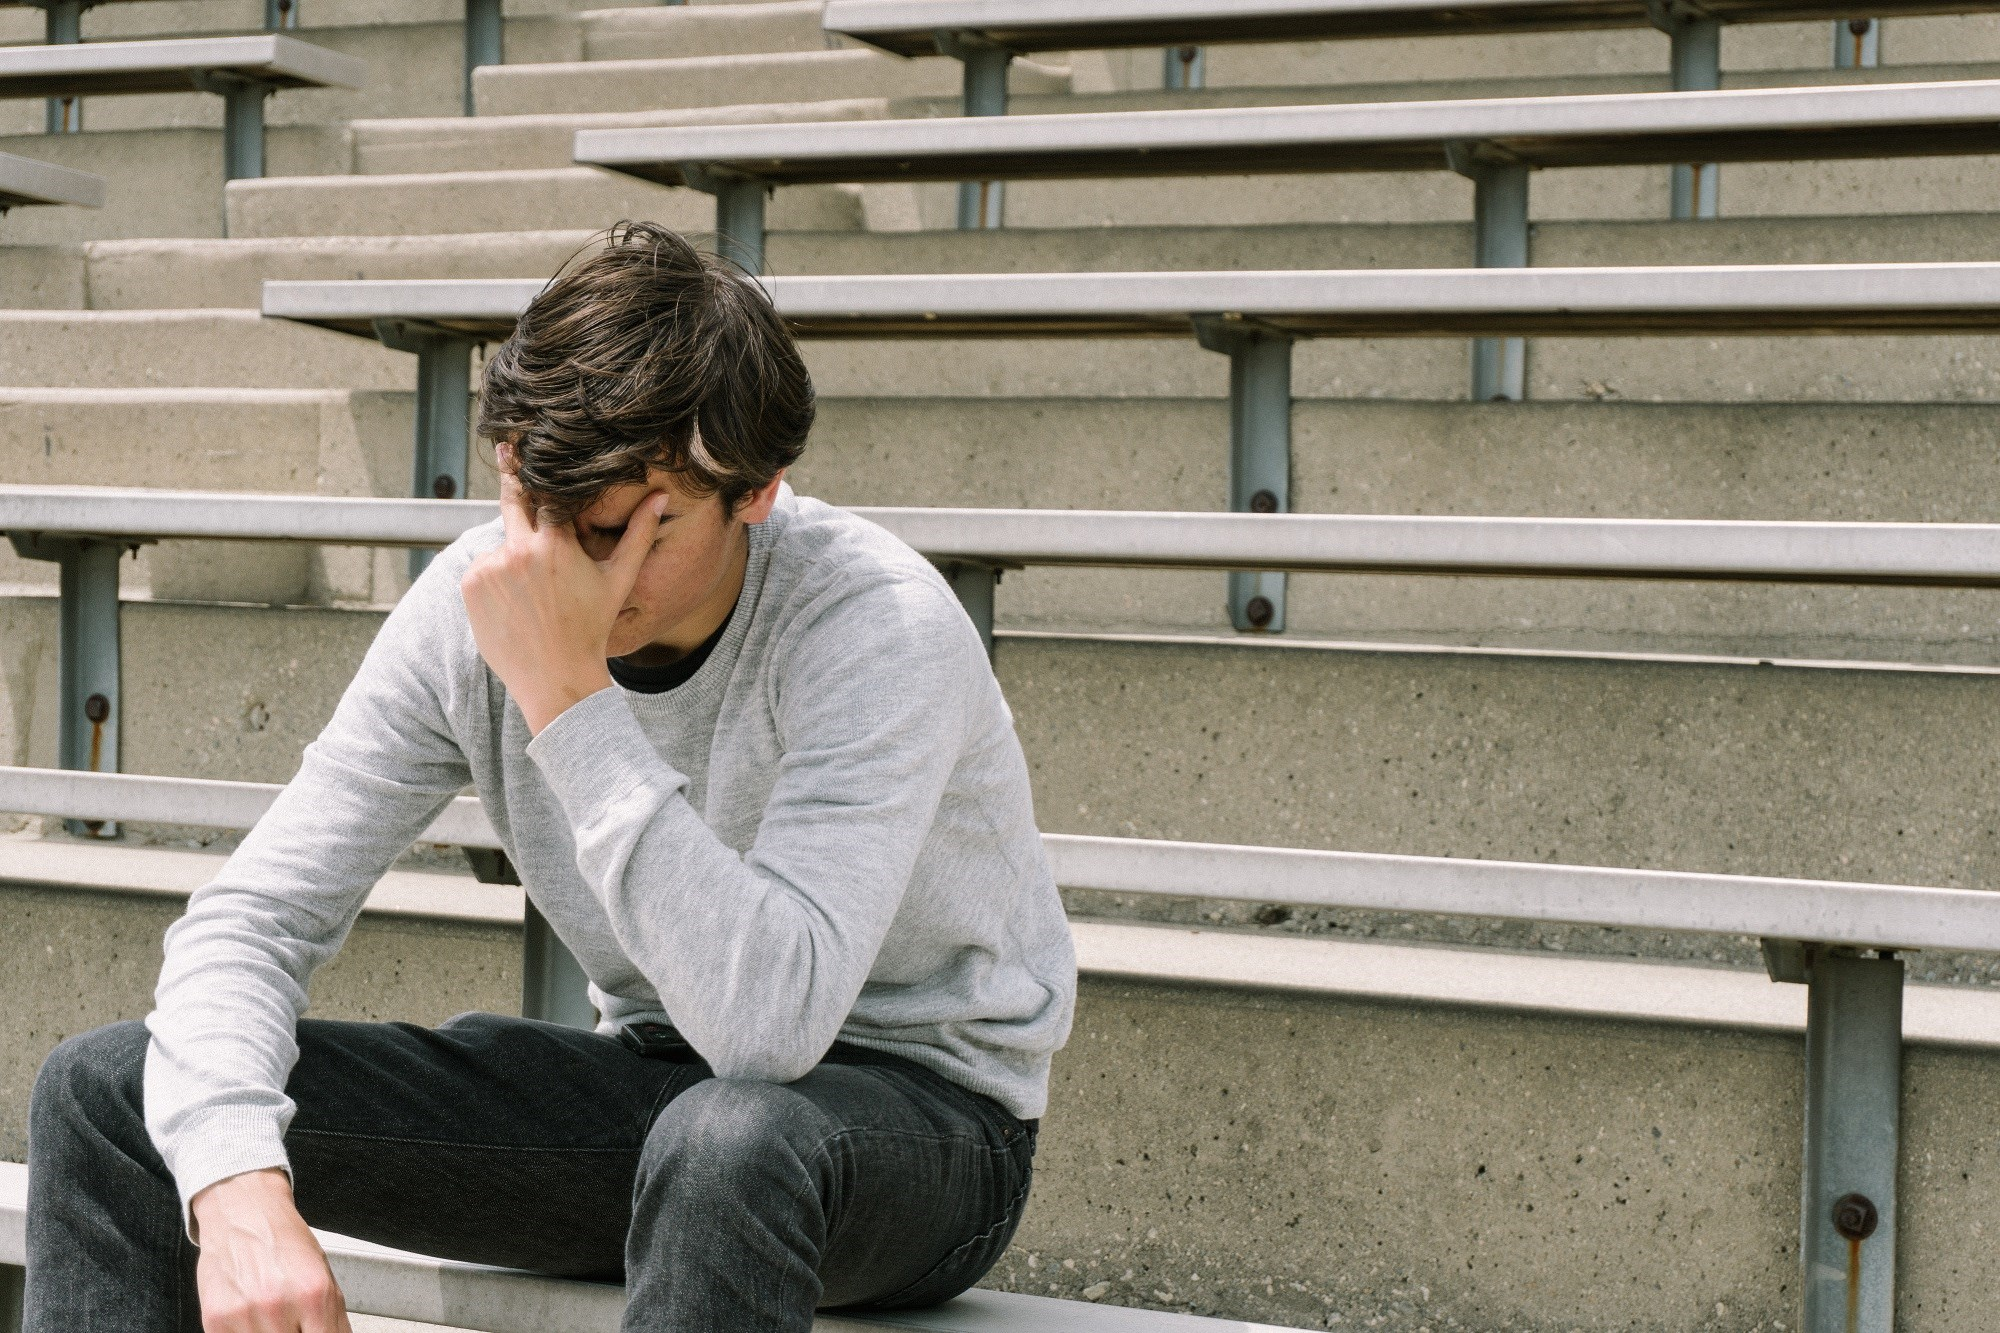 Adolescents with bipolar I disorder whose symptoms are in remission are significantly less likely to experience conduct disorder or antisocial personality disorder.